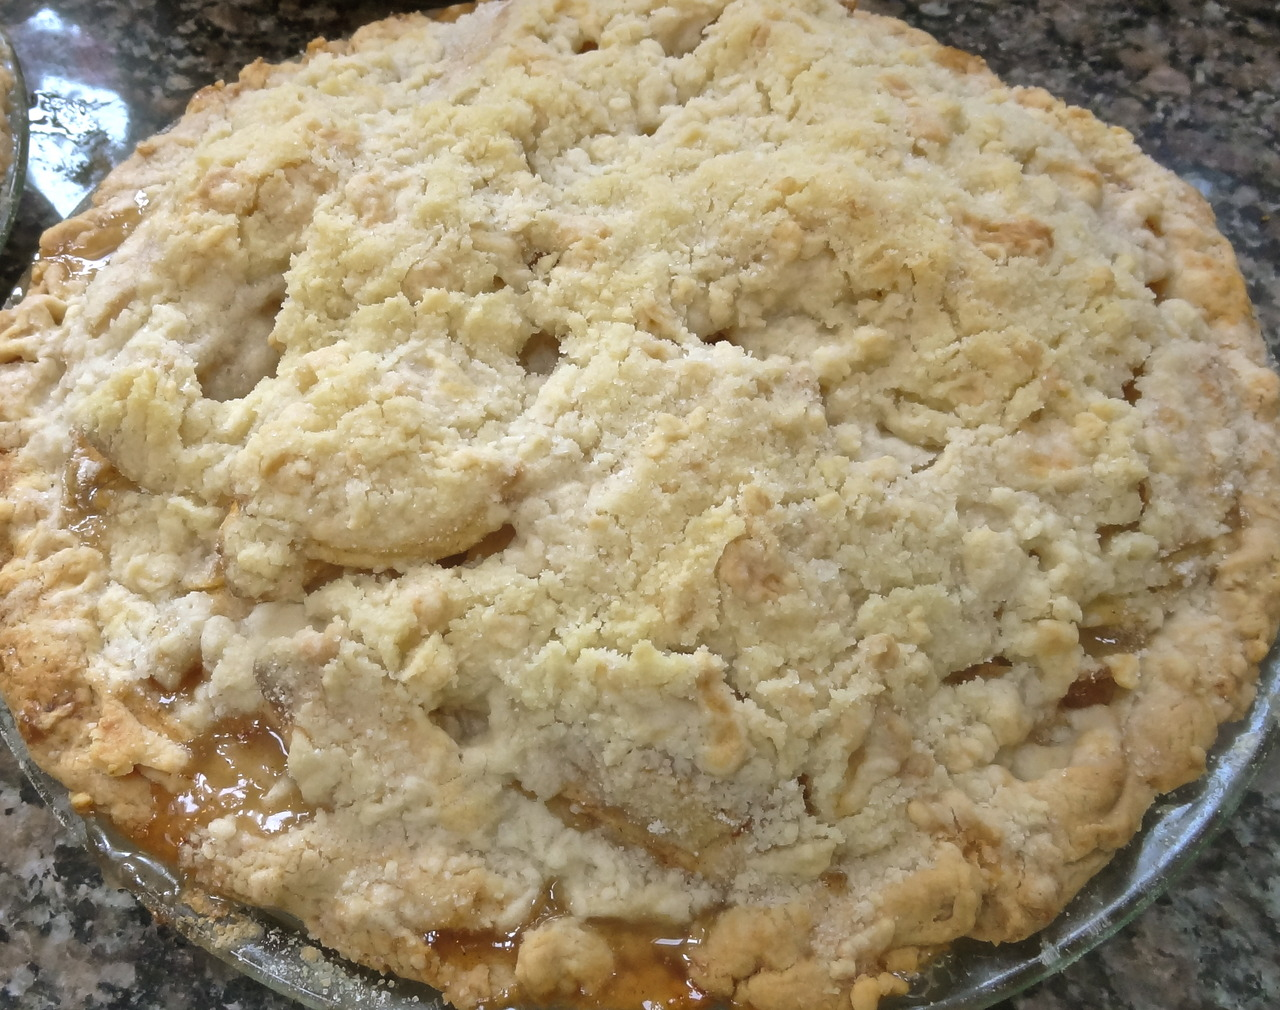 Is there a homier, more comforting, more luscious summer dessert than peach pie? Here's an easy, easy version, straight from my Mom's hand-written recipe.     She baked her pies with the peaches that grew in our backyard. Alas, I can barely get a chili pepper to grow, so I rely on stores and farmer's markets.    Mmmmm. There were good peaches at the local Farmer's Market a few days ago.    Ate some. Poached some. Grilled some.    The rest? You can see it here.    Peach pie. Just like Mom's, although I used white peaches this time and she usually used yellow. No difference really. I just bought the ones that looked good and smelled fragrant.      Peach Pie    8 large, ripe peaches, peeled and cut into slices  3 tablespoons lemon juice  1/2 cup sugar  3 tablespoons minute tapioca  dash of salt  1/2 teaspoon cinnamon  1 unbaked 9-inch pie crust     streusel crust:    3/4 cup flour  1/3 cup sugar  1/2 teaspoon cinnamon  dash of salt  6 tablespoons cold butter, cut into small pieces    Preheat the oven to 375 degrees. Place peaches in a large bowl. Toss the peaches with the lemon juice. Add the sugar, tapioca, salt and cinnamon and toss ingredients to coat the peach slices. Pour the mixture into the unbaked pie crust.     To make the streusel: in another bowl, or in an electric mixer or food processor, combine the flour, sugar, cinnamon and dash of salt. Add the butter and work the pieces into the dry ingredients with hands or a pastry blender (or on low with a flat beater in a mixer, or on pulse with a food processor) until the mixture resembles coarse meal. Place the crumbs on top of the peach filling. Bake for about 45 minutes or until top is golden brown.  Makes one 9-inch pie